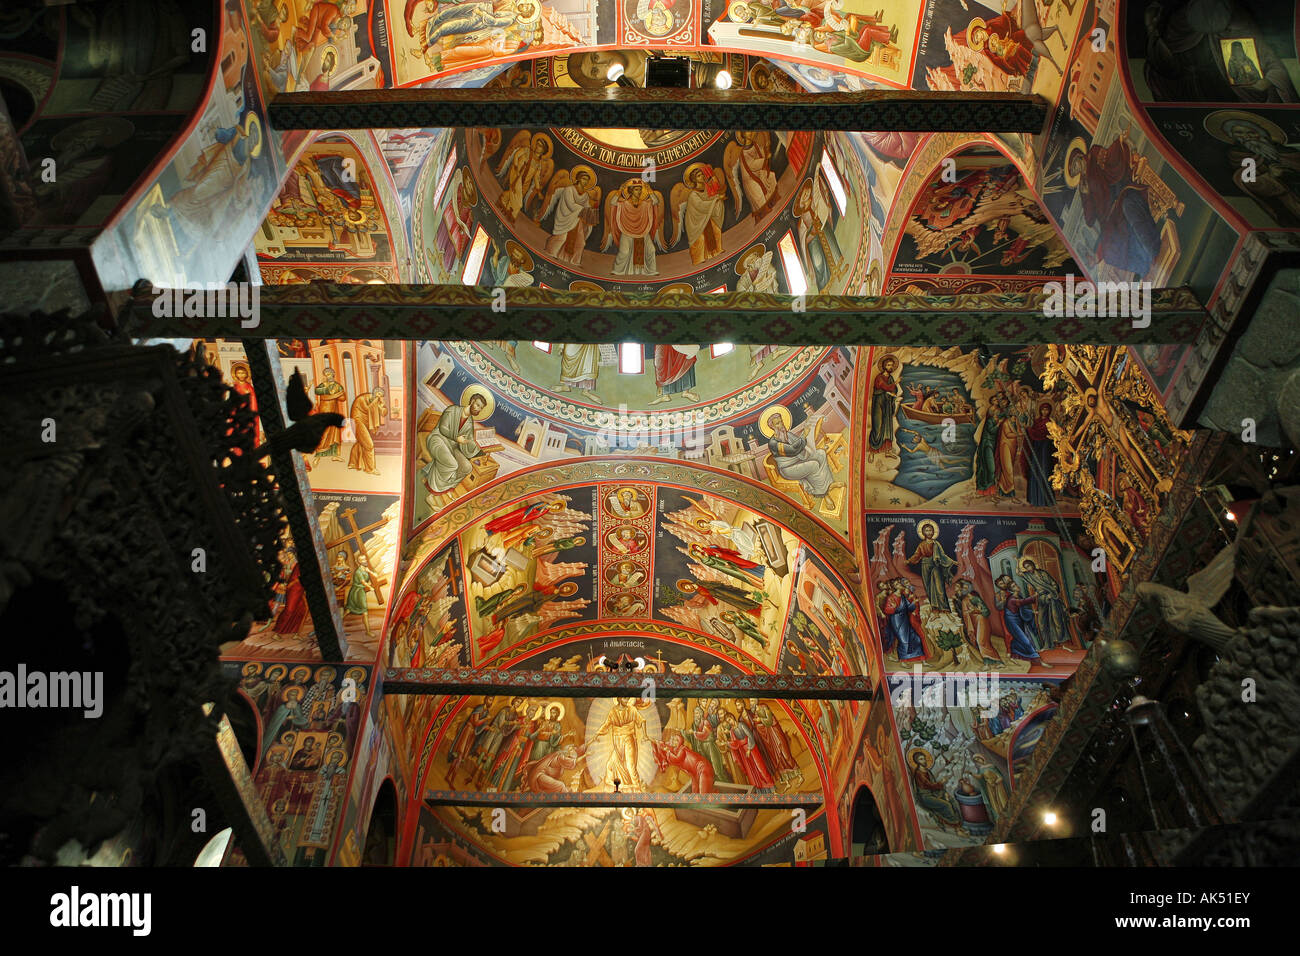 The ceiling of Agios Stefanos monastery in Meteora Greece ...